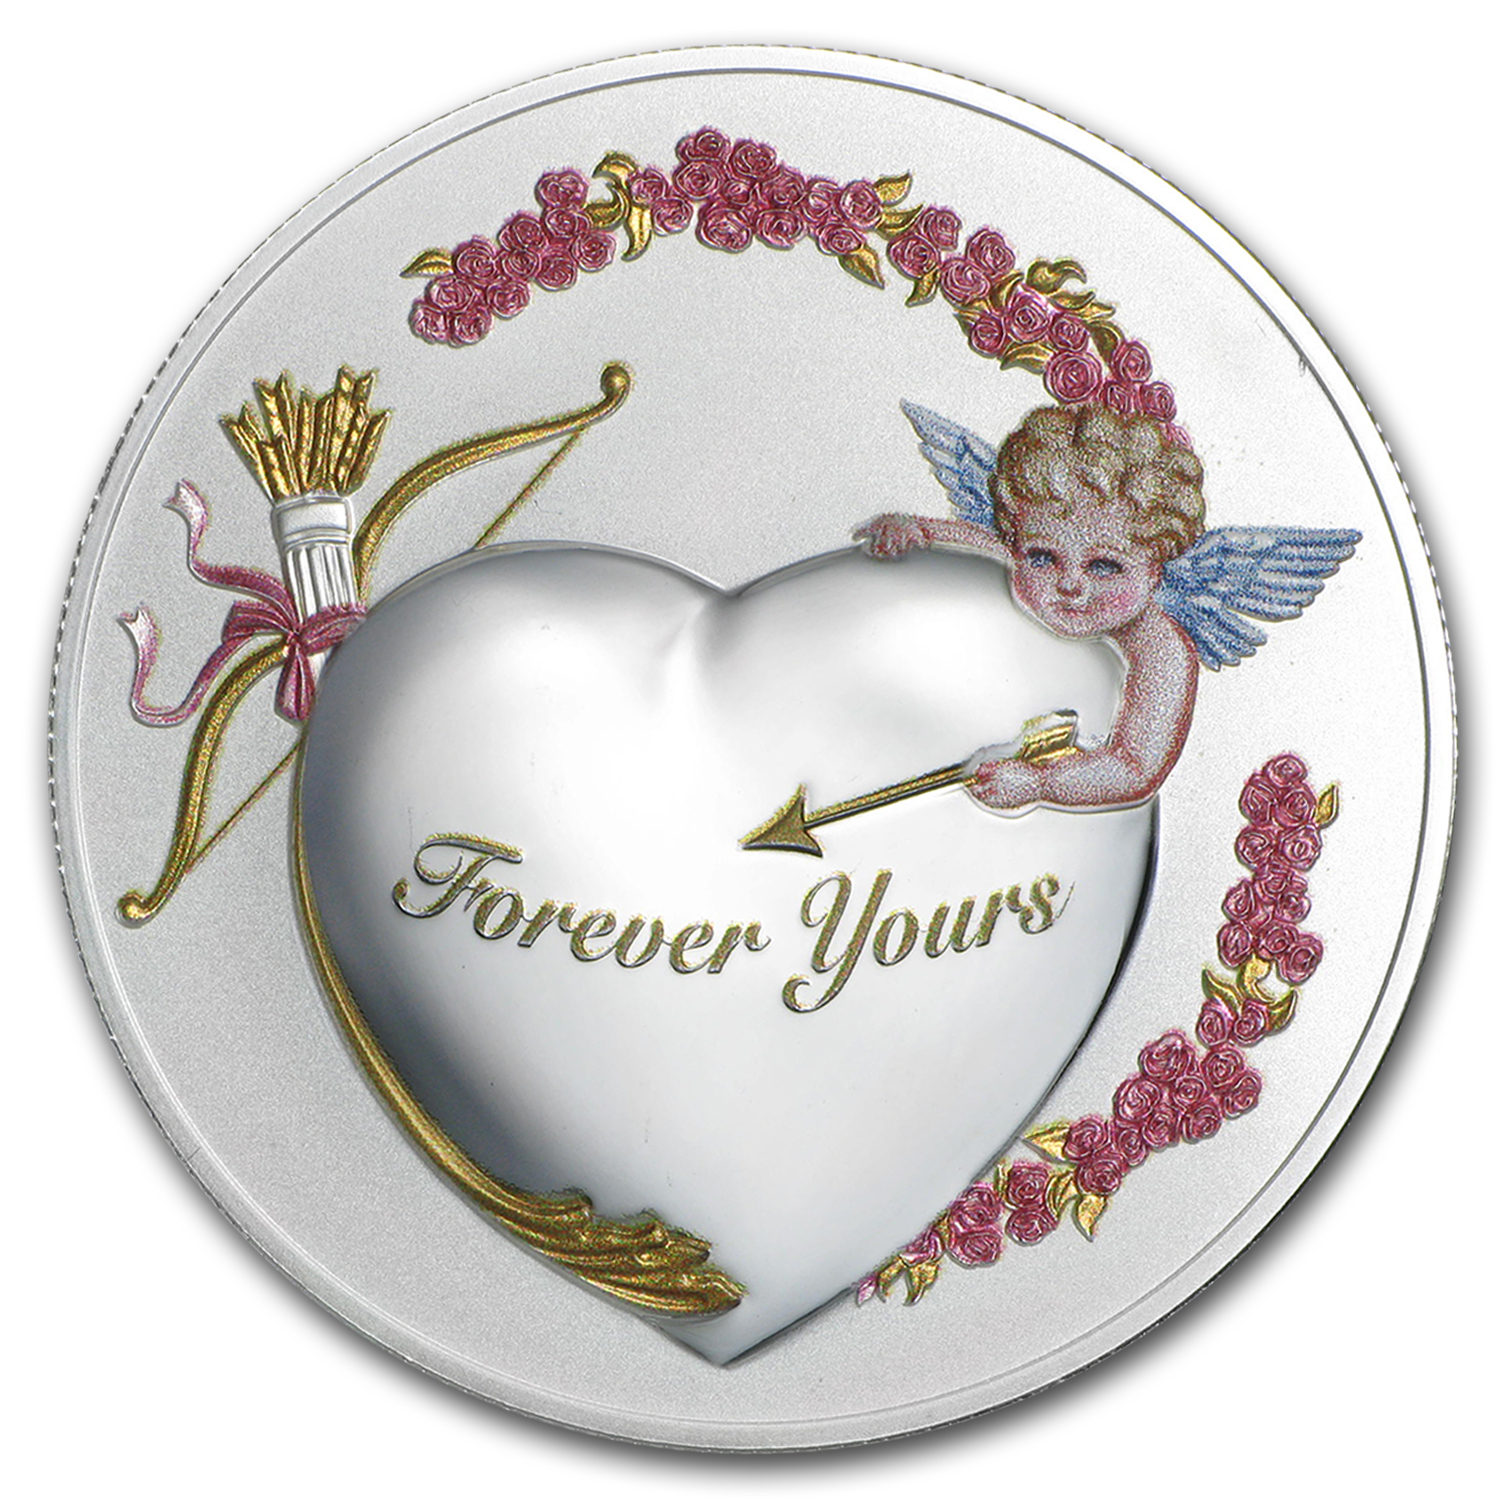 "2016 Niue 1 oz Silver ""Forever Yours"" Coin Prooflike (PAMP)"